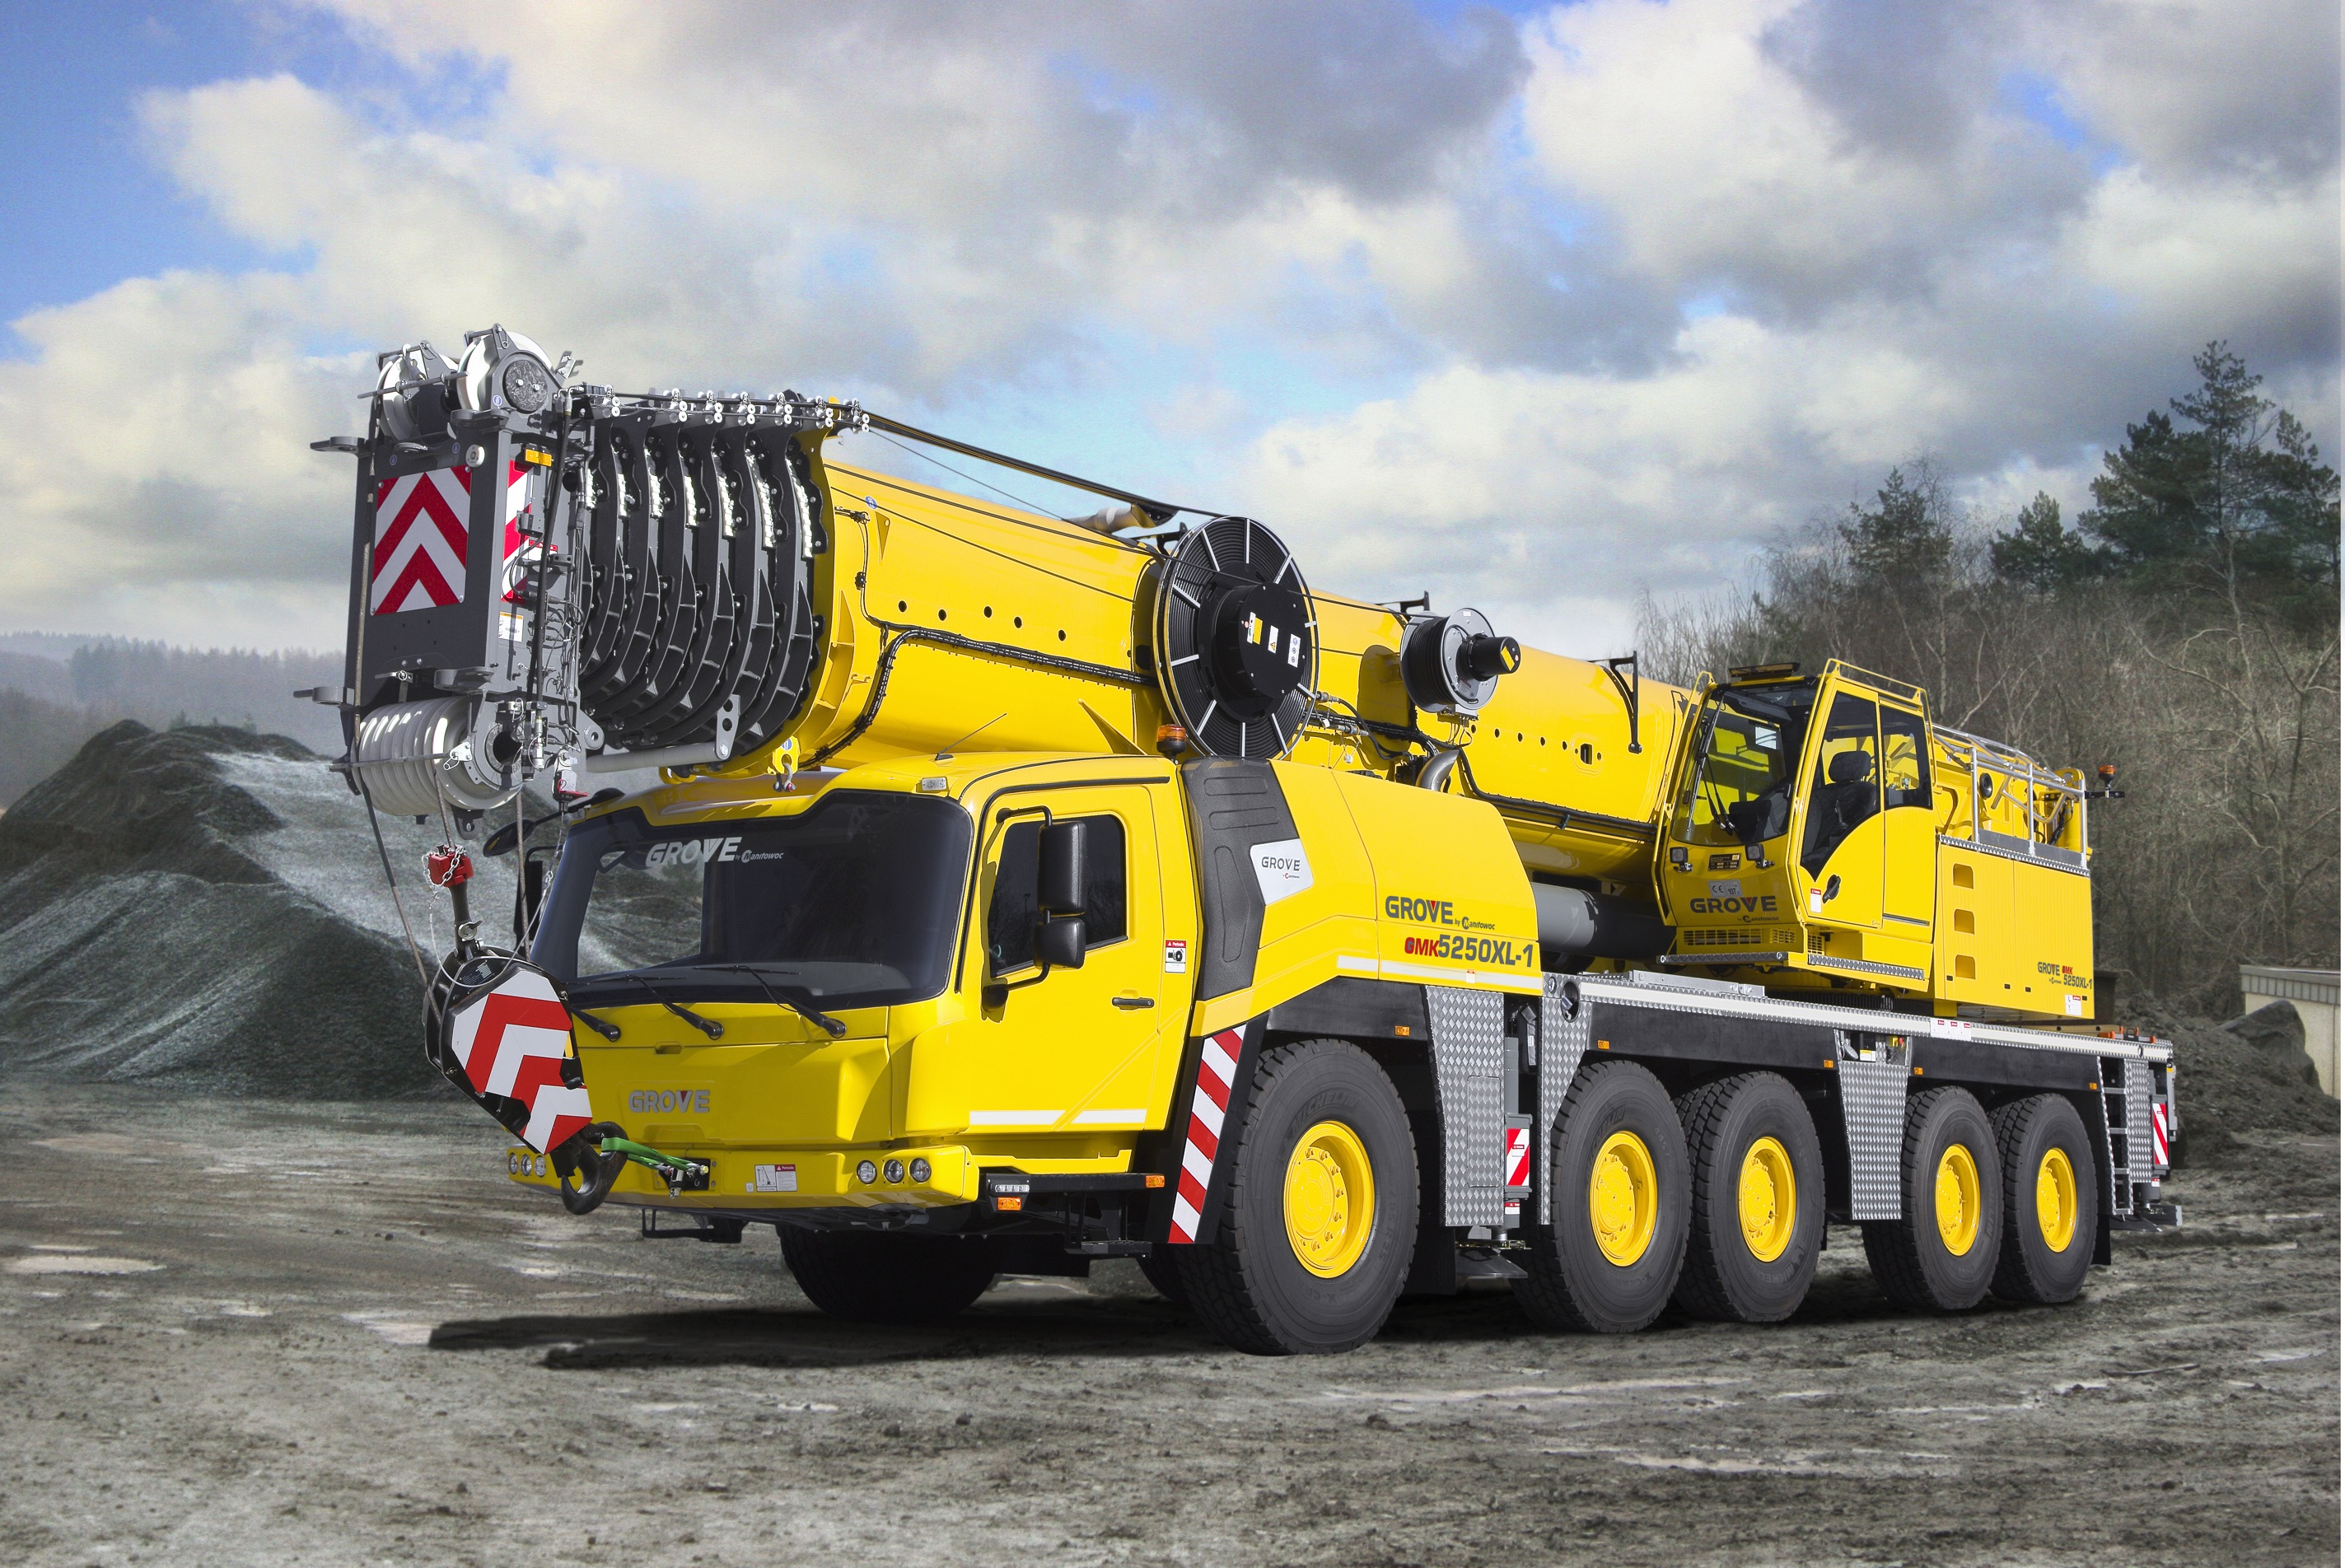 Grove Lunched New Model GMK5250XL-1, GMK3050-2, GMK3060L All-Terrain Cranes